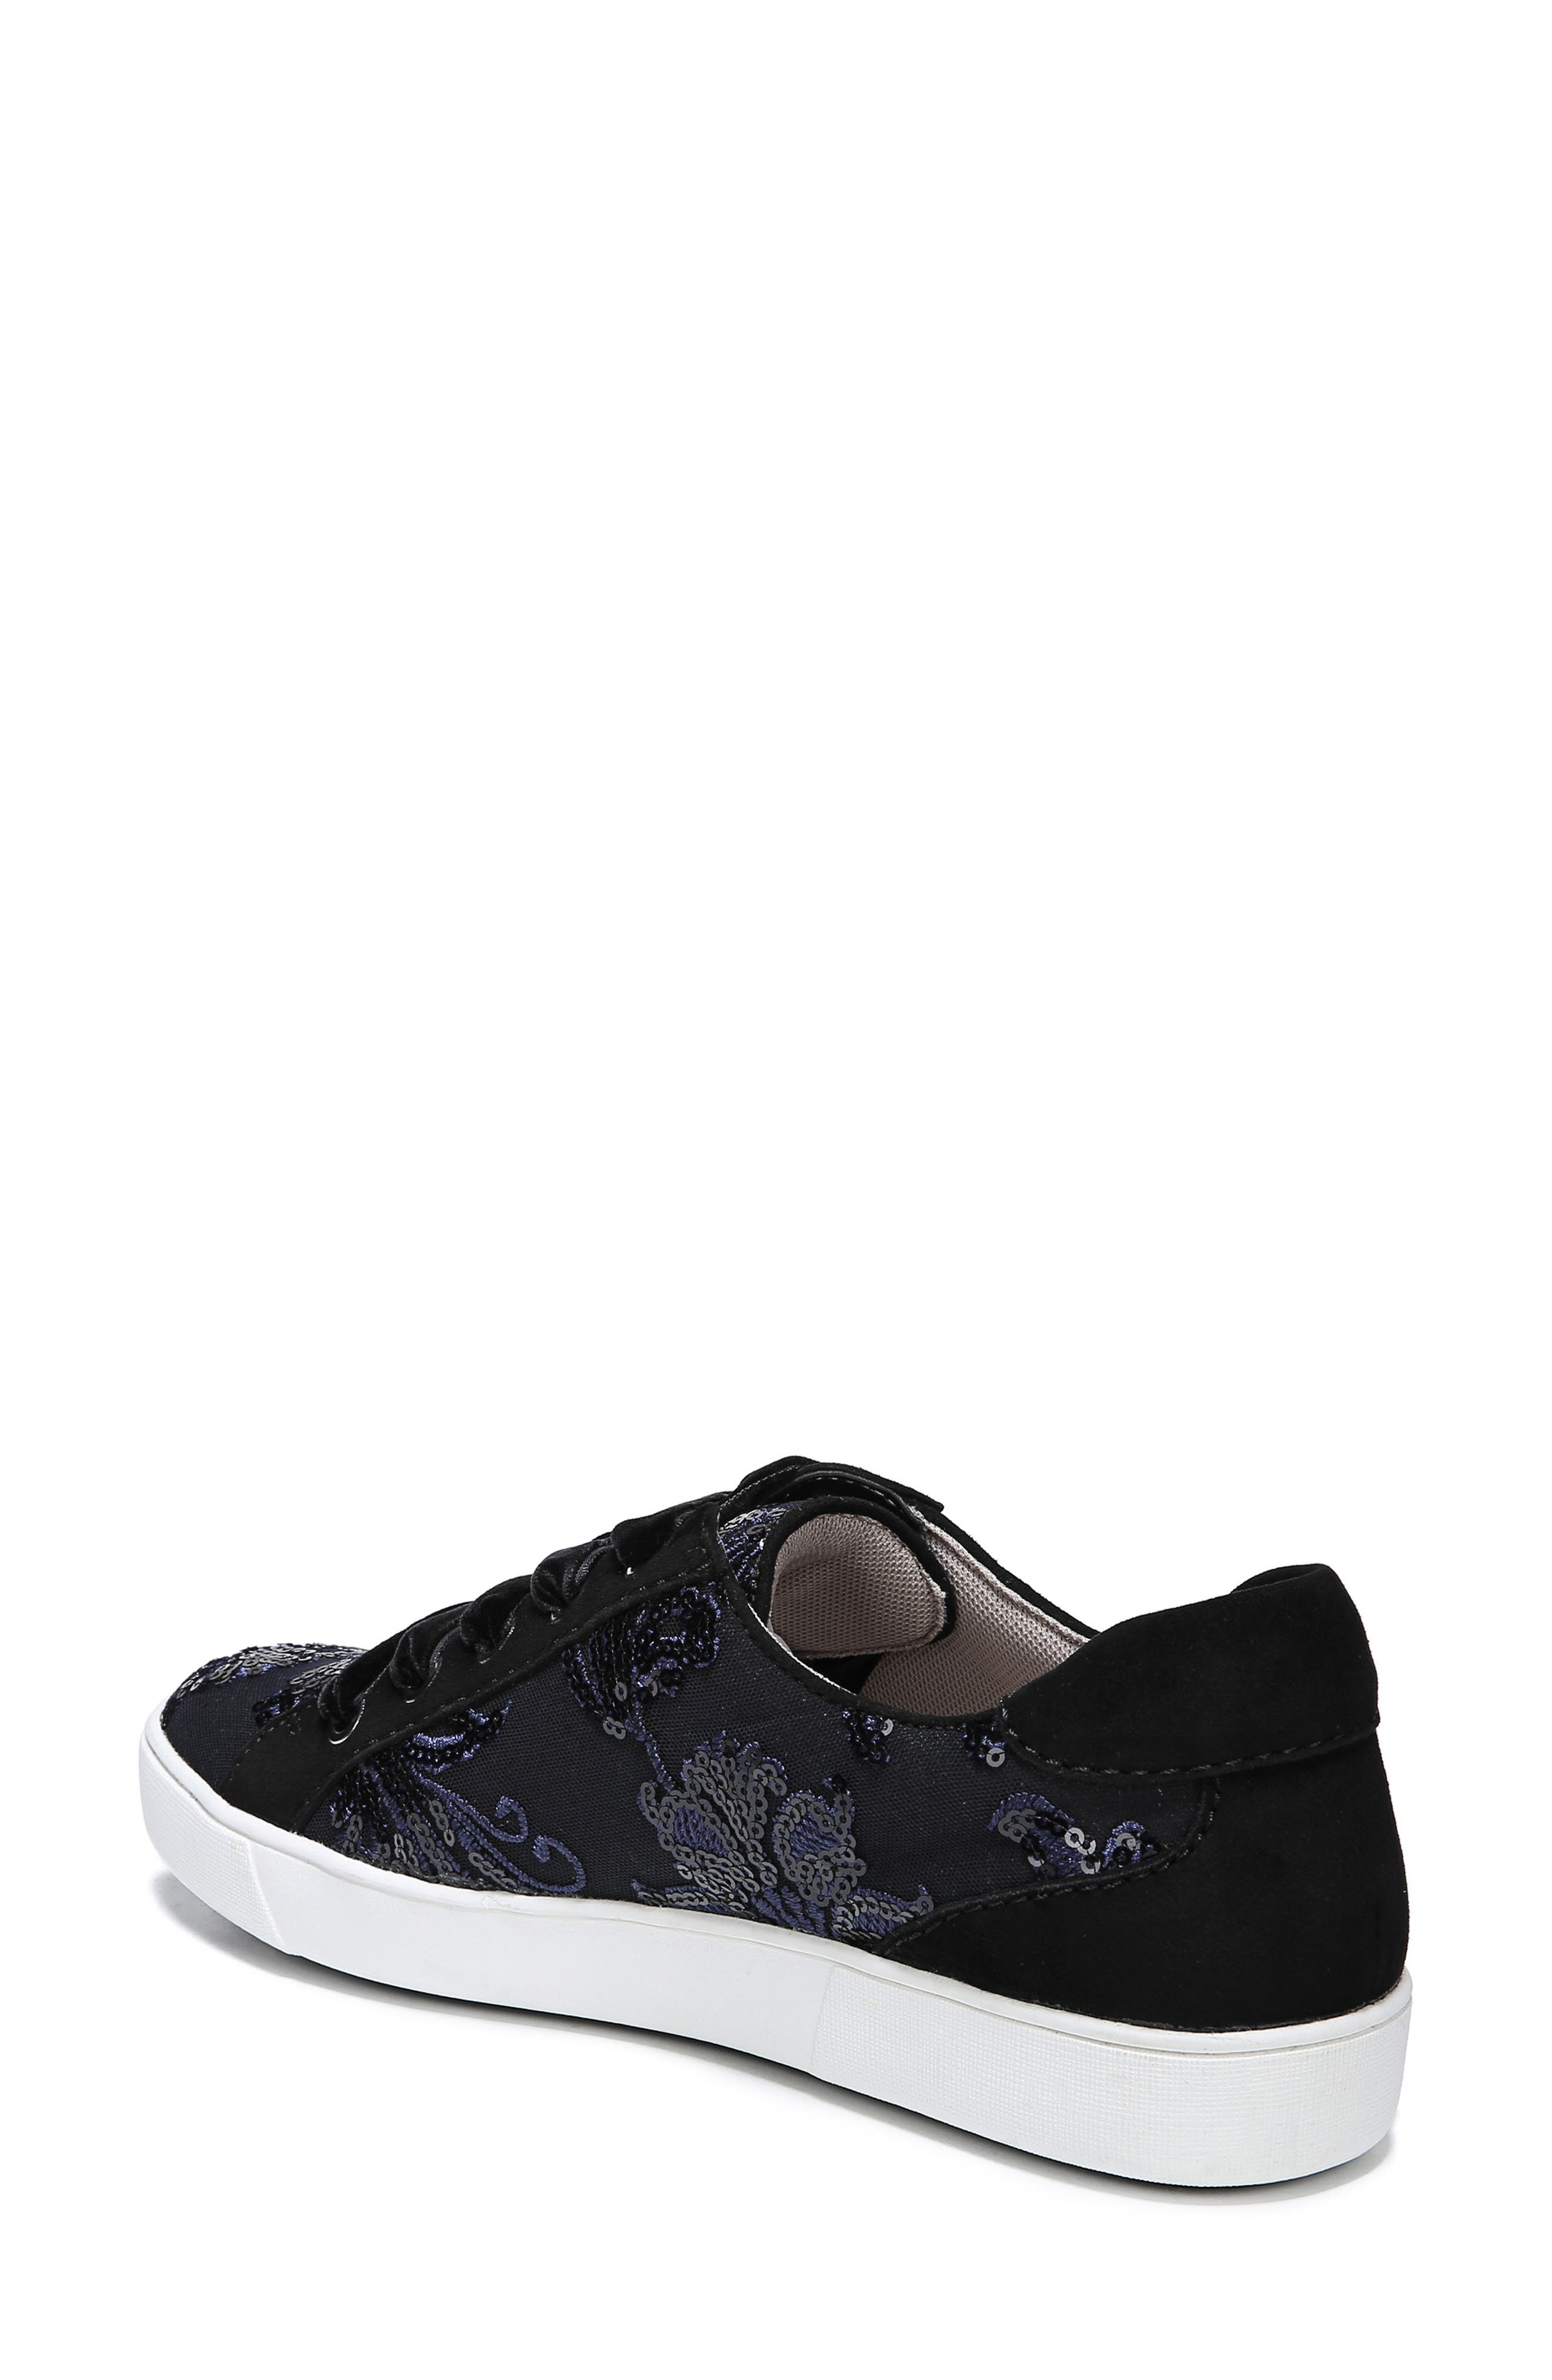 NATURALIZER, Morrison Sneaker, Alternate thumbnail 2, color, NAVY EMBROIDERED LACE